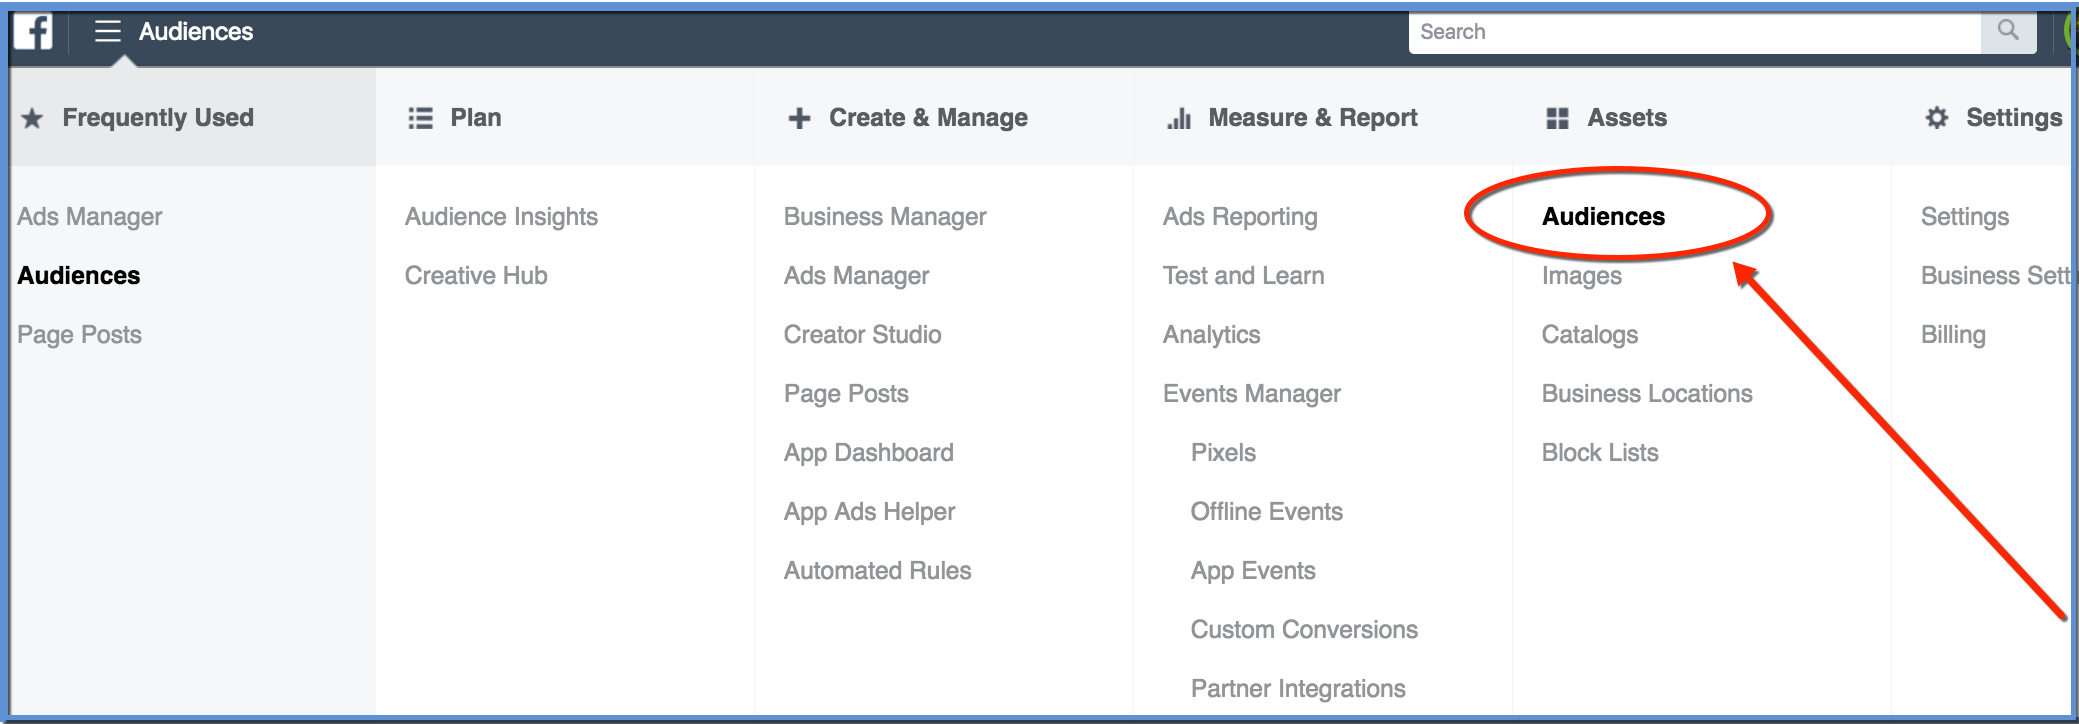 Audiences Tool Ads Manager and Business Manager